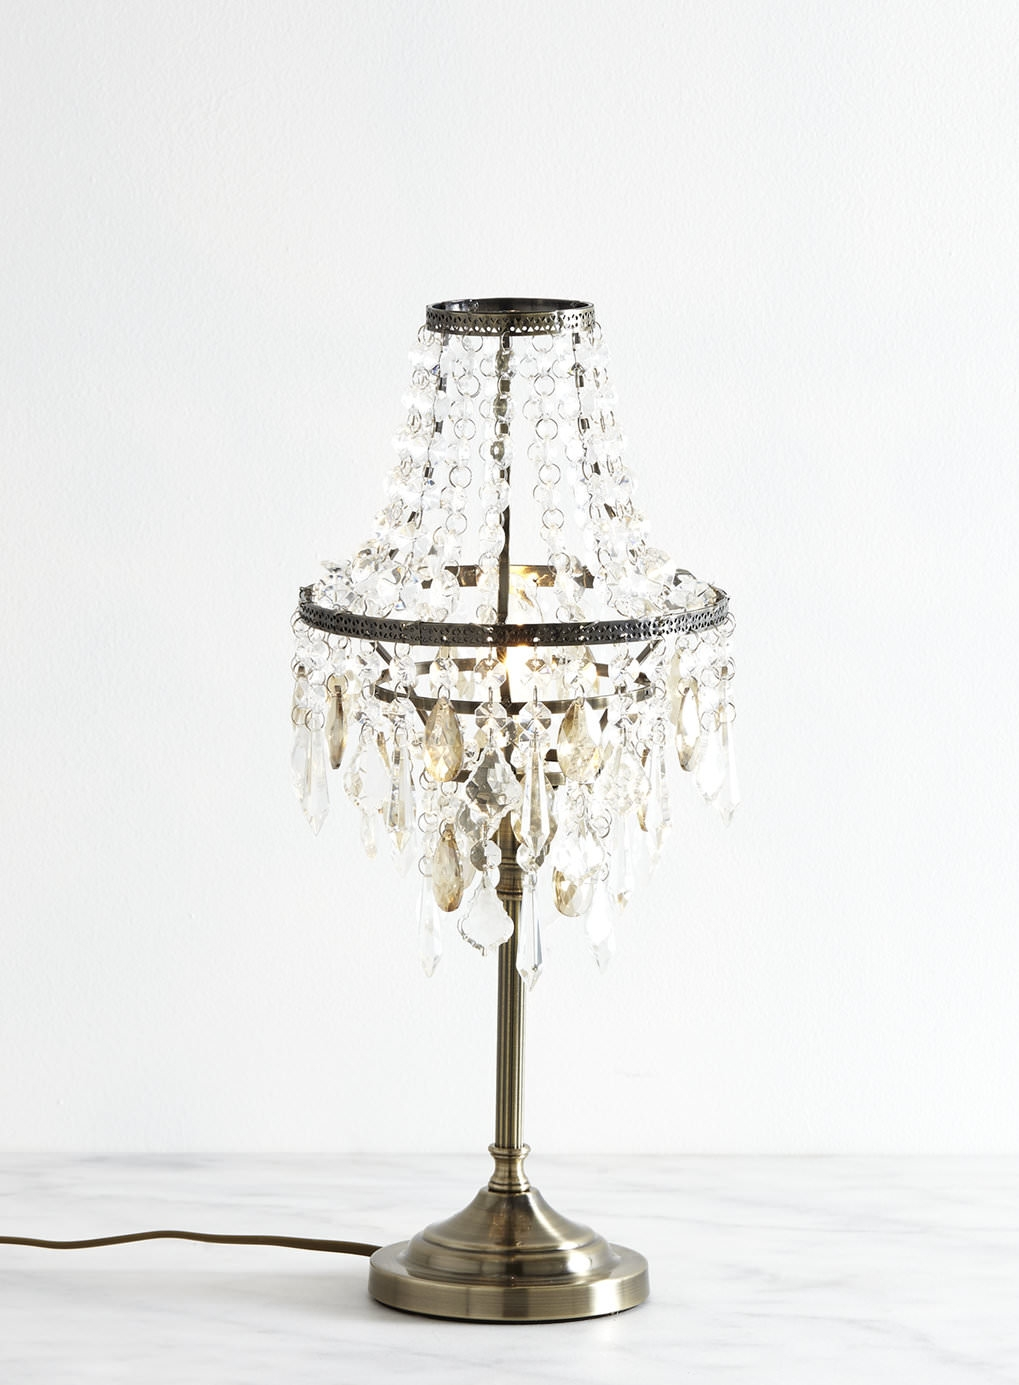 Decorative Chandelier Table Lamp Lighting Fixtures All In One In Table Chandeliers (Image 8 of 15)